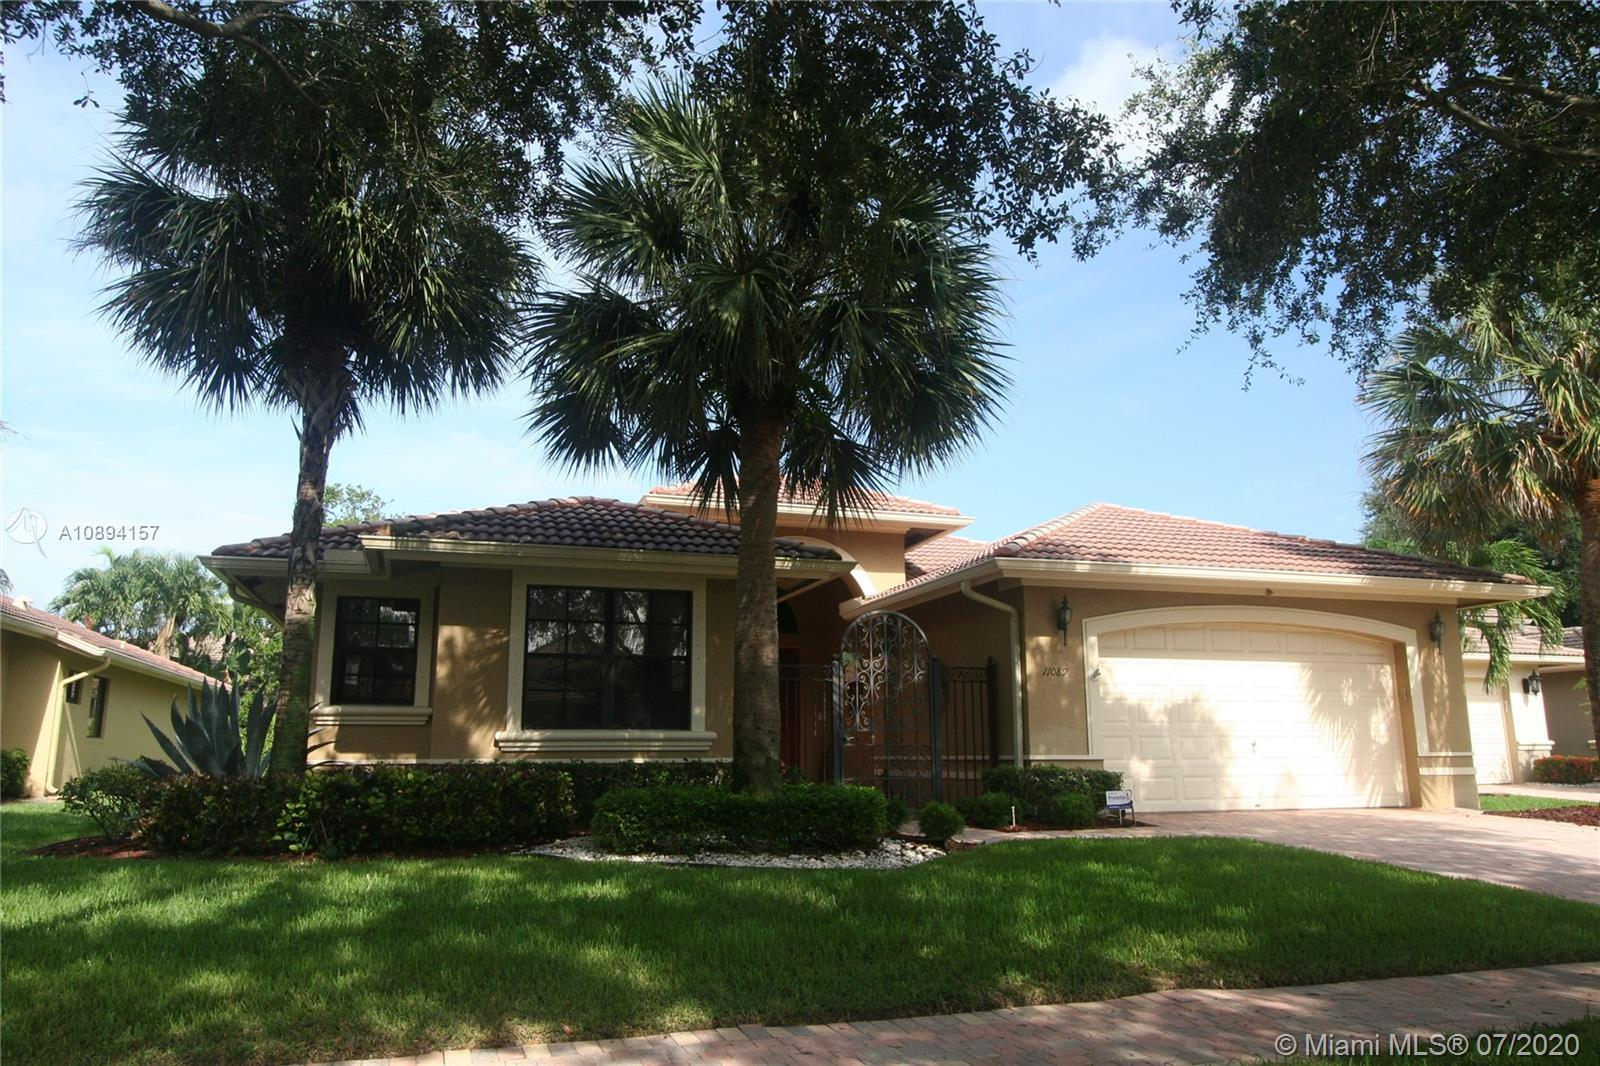 This 3 br 3 ba with 4th br or office home sits in an exclusive secure gated community on a quiet cul